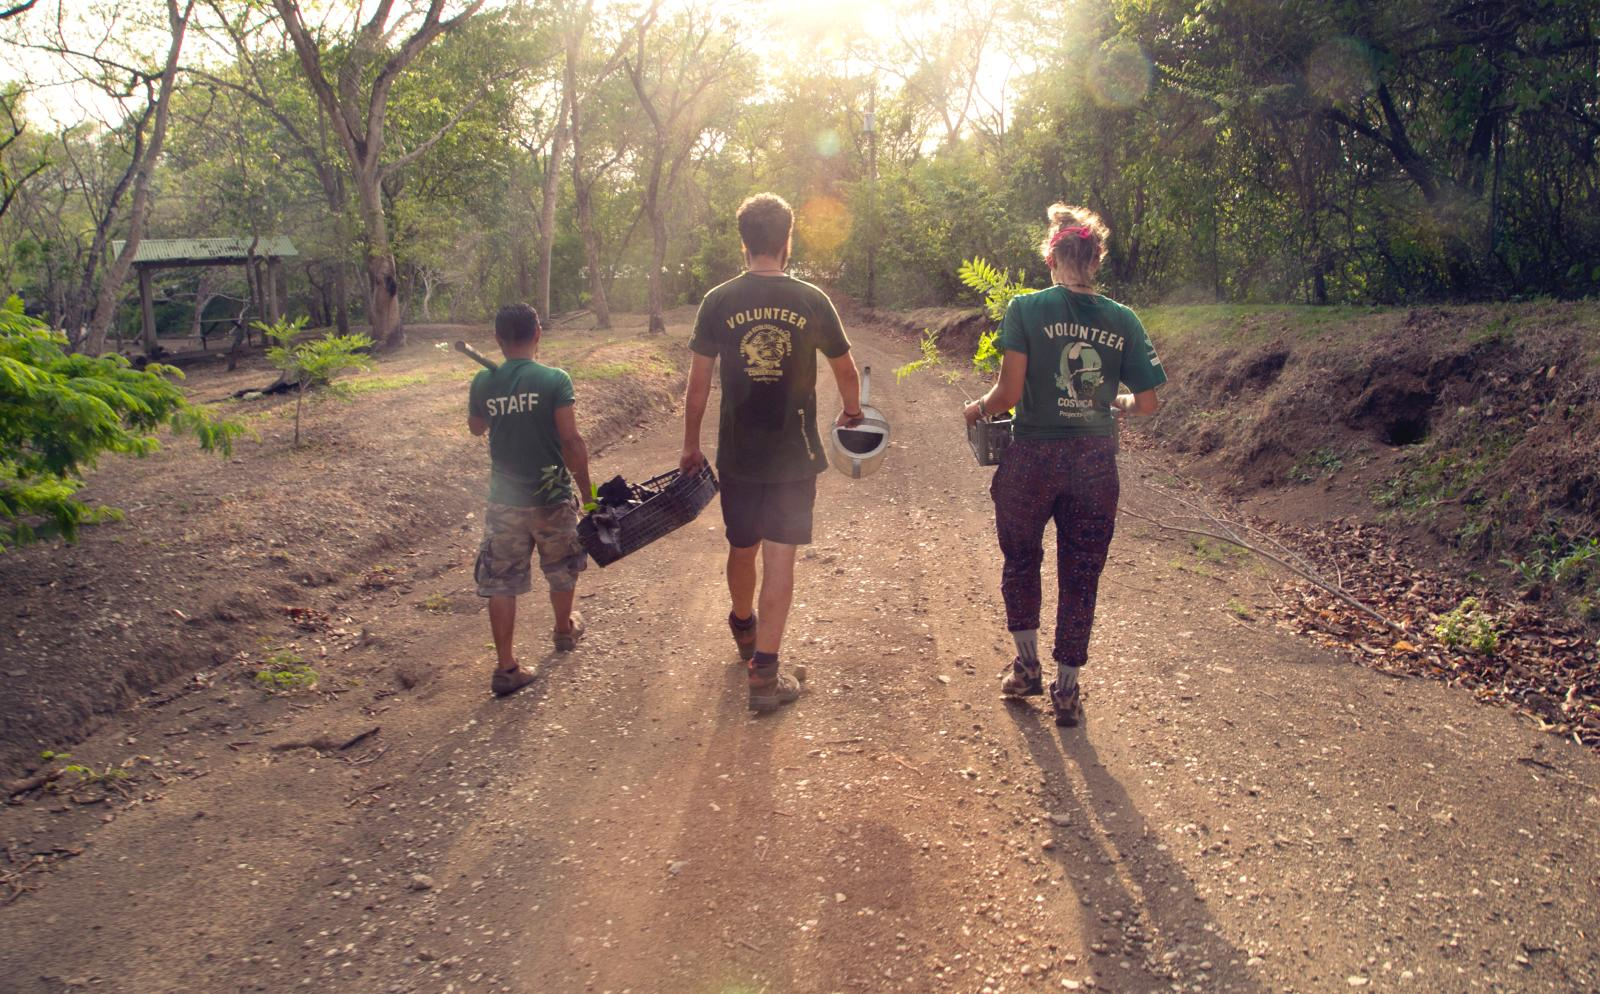 Conservation volunteers working together abroad